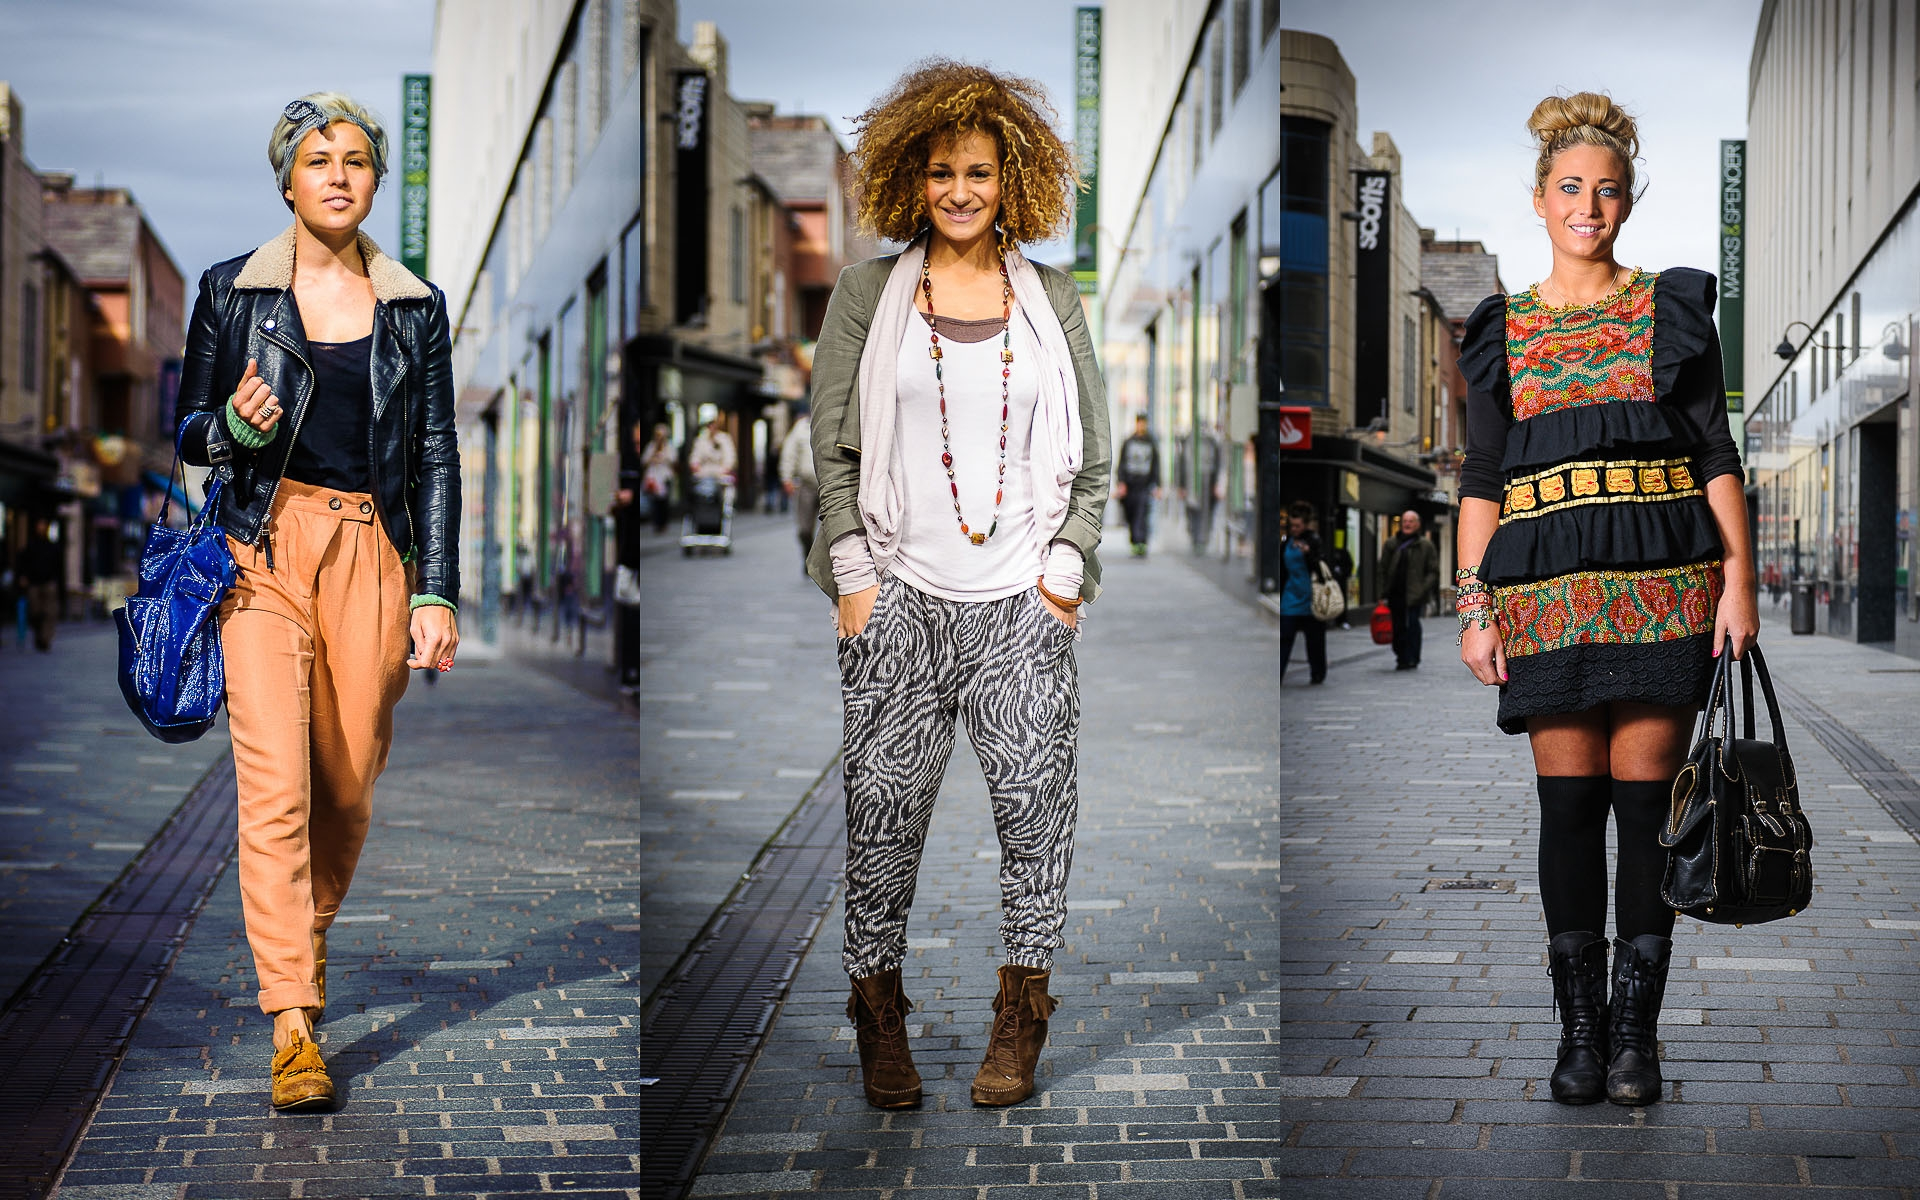 Women in Liverpool street fashion photography editorial shoot